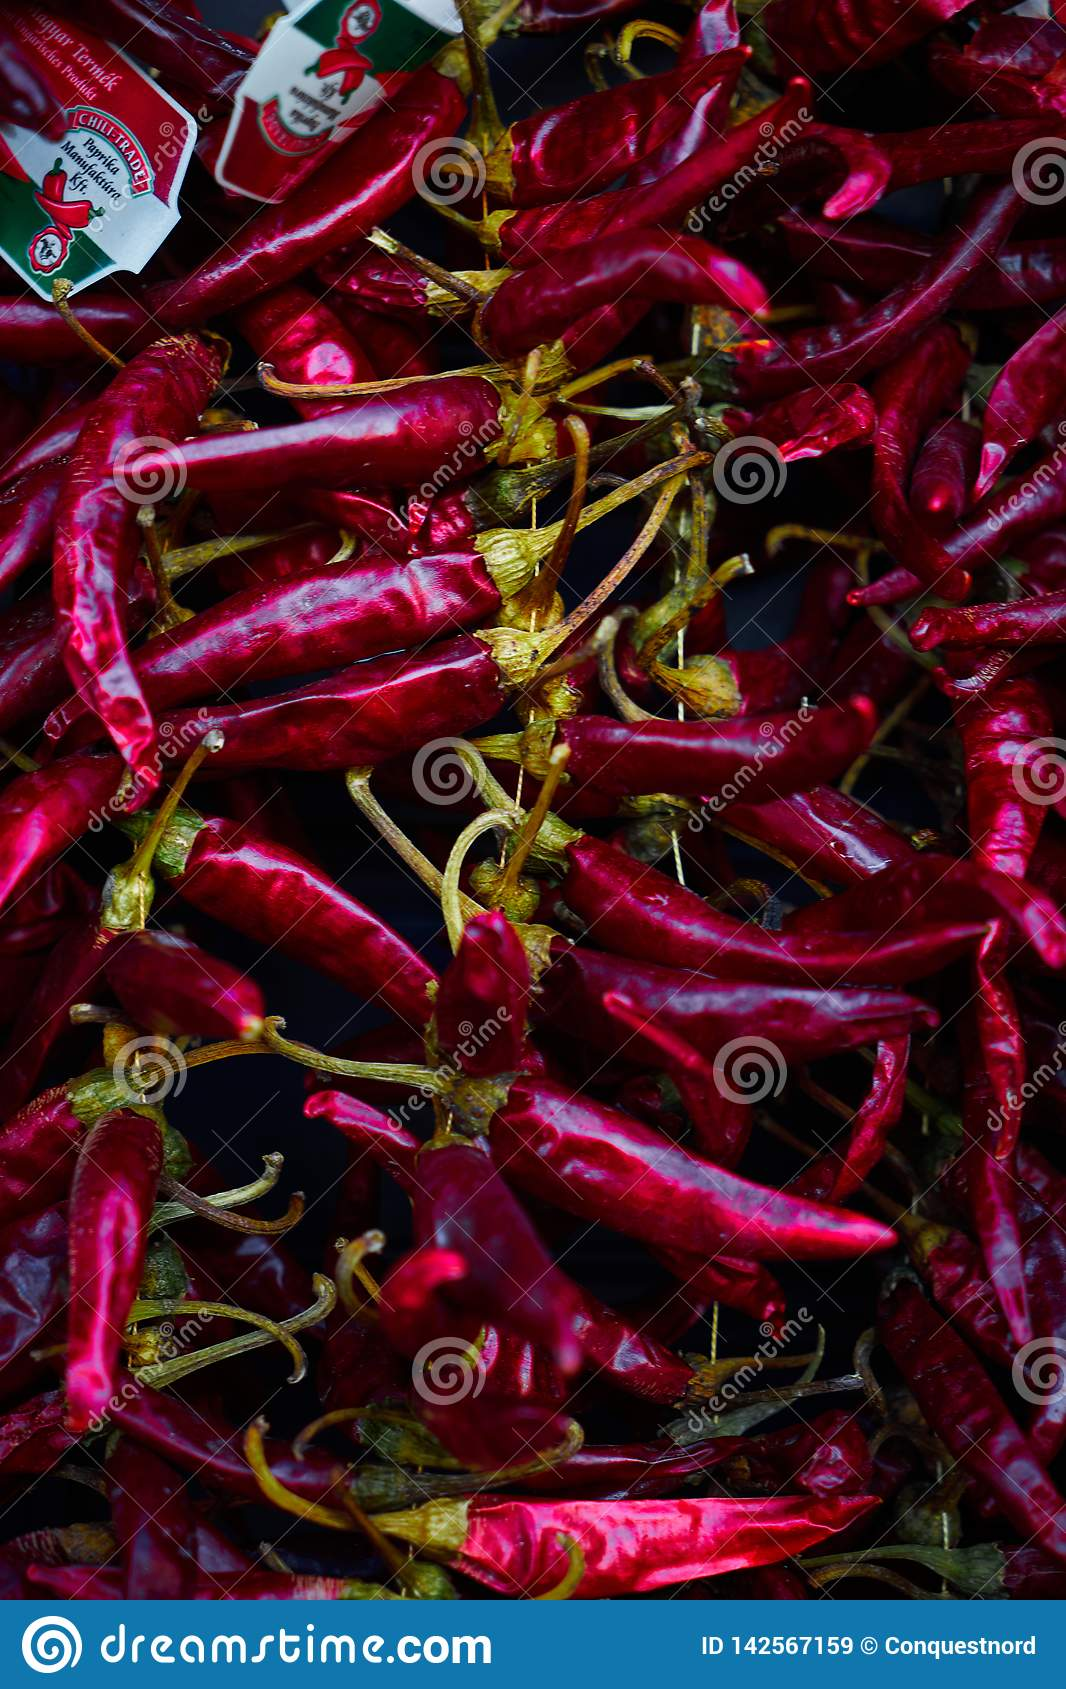 Hot red peppers hanging on the wall